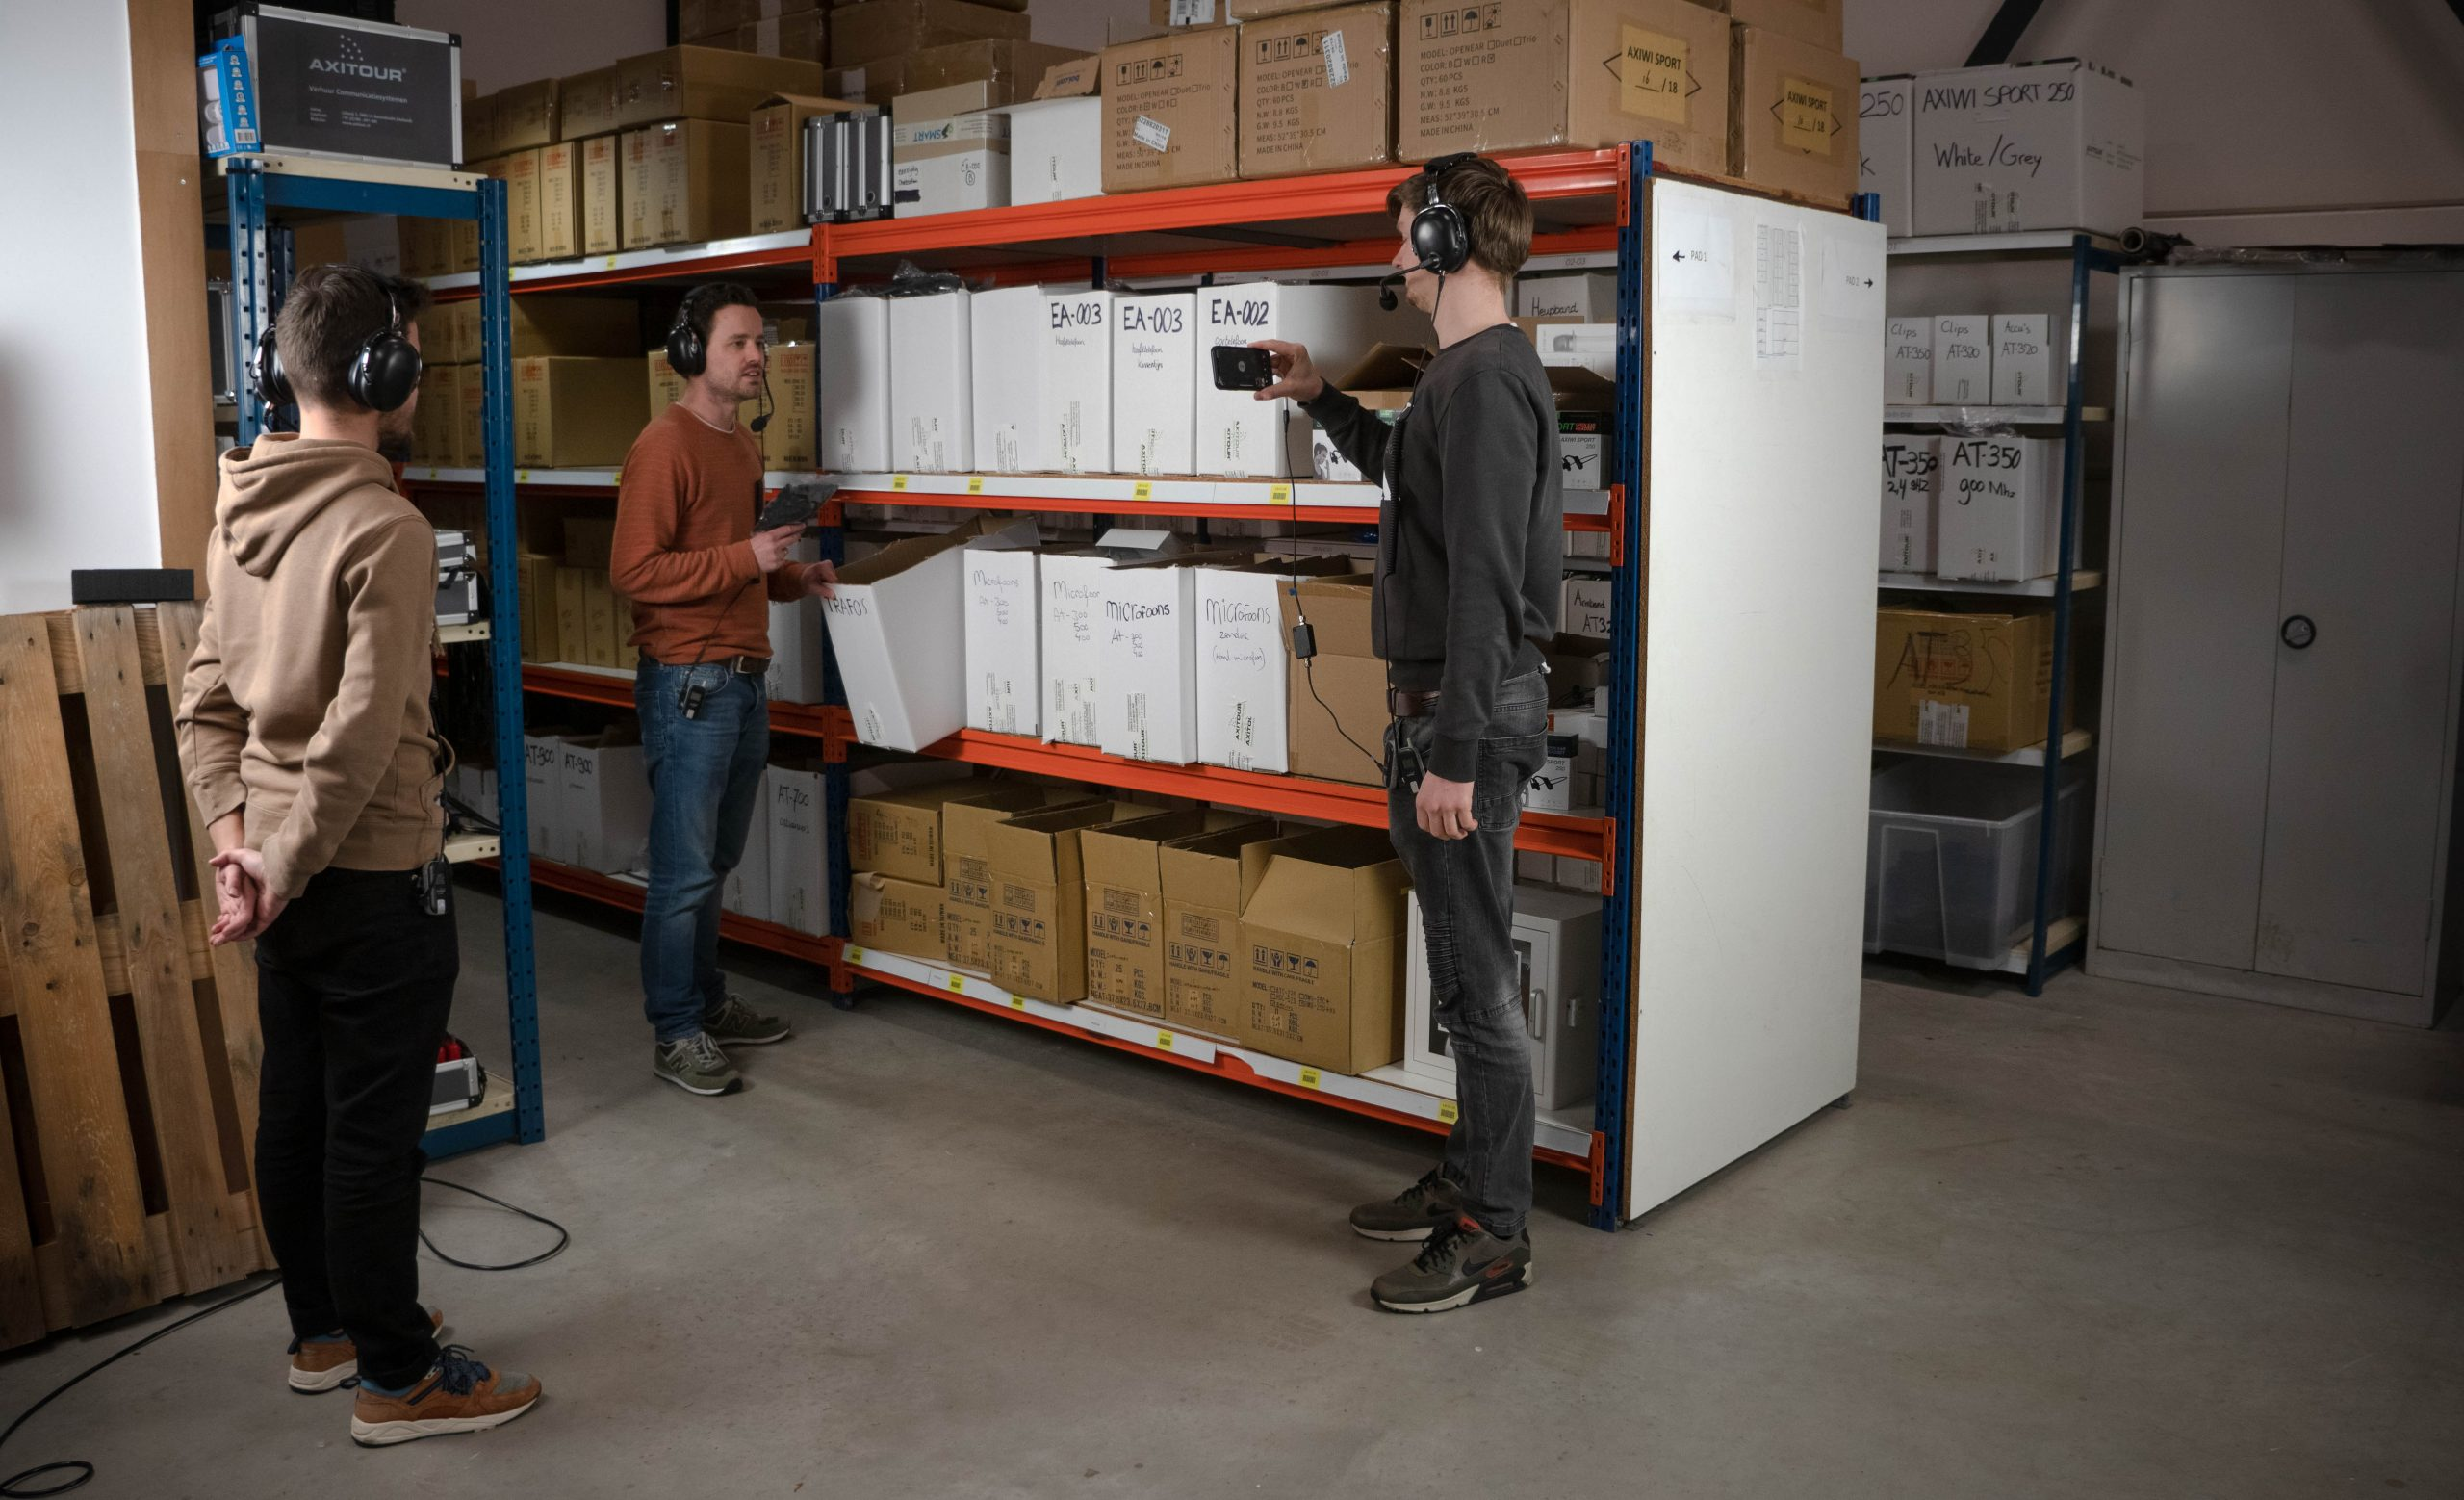 tour guiding remotely with video conferencing apps in a warehouse